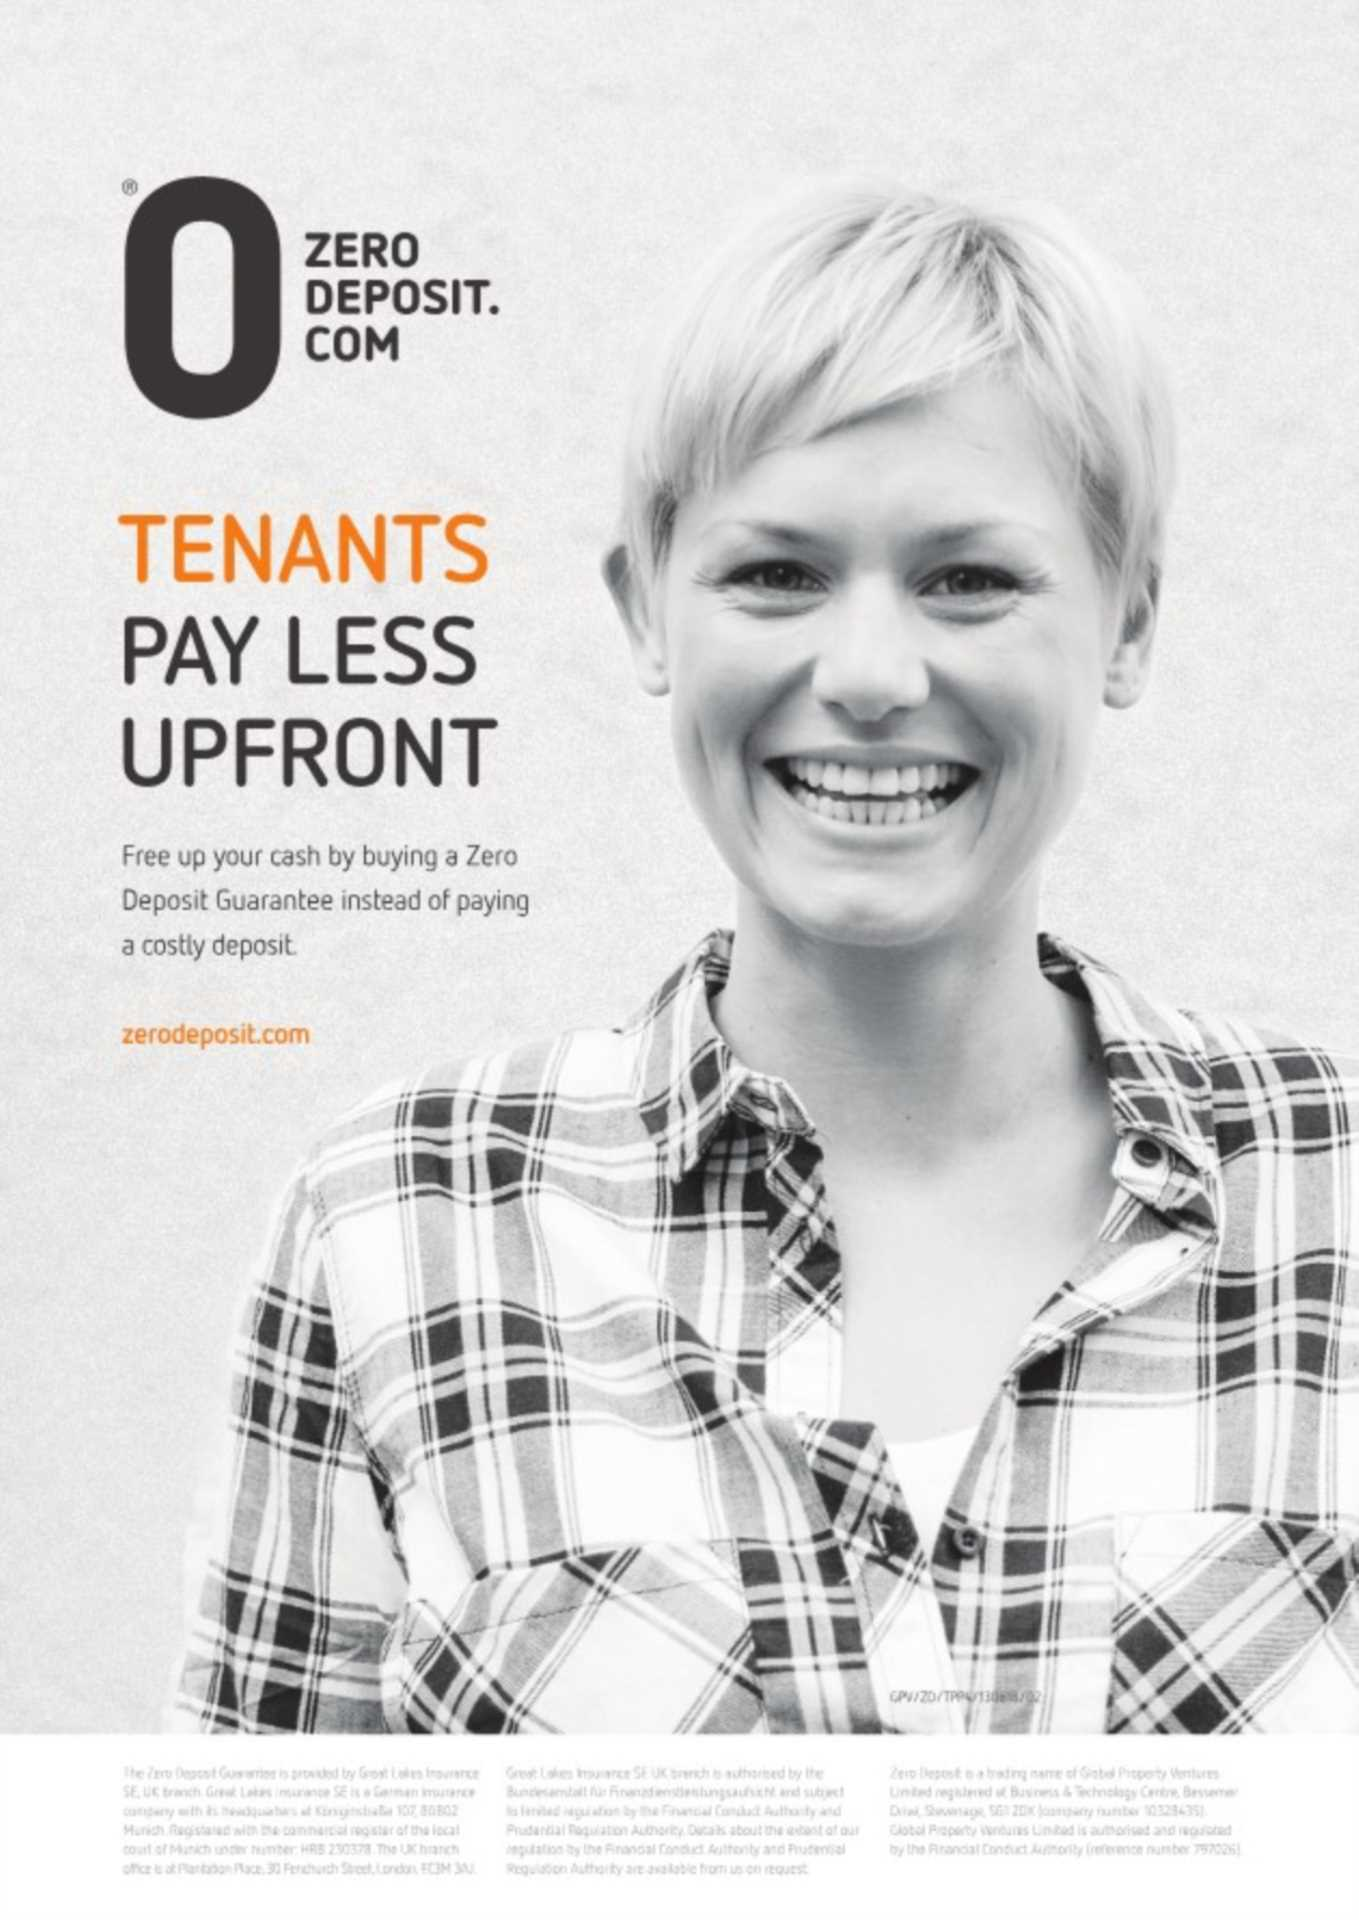 Tenants - Why pay more, when you can pay less!